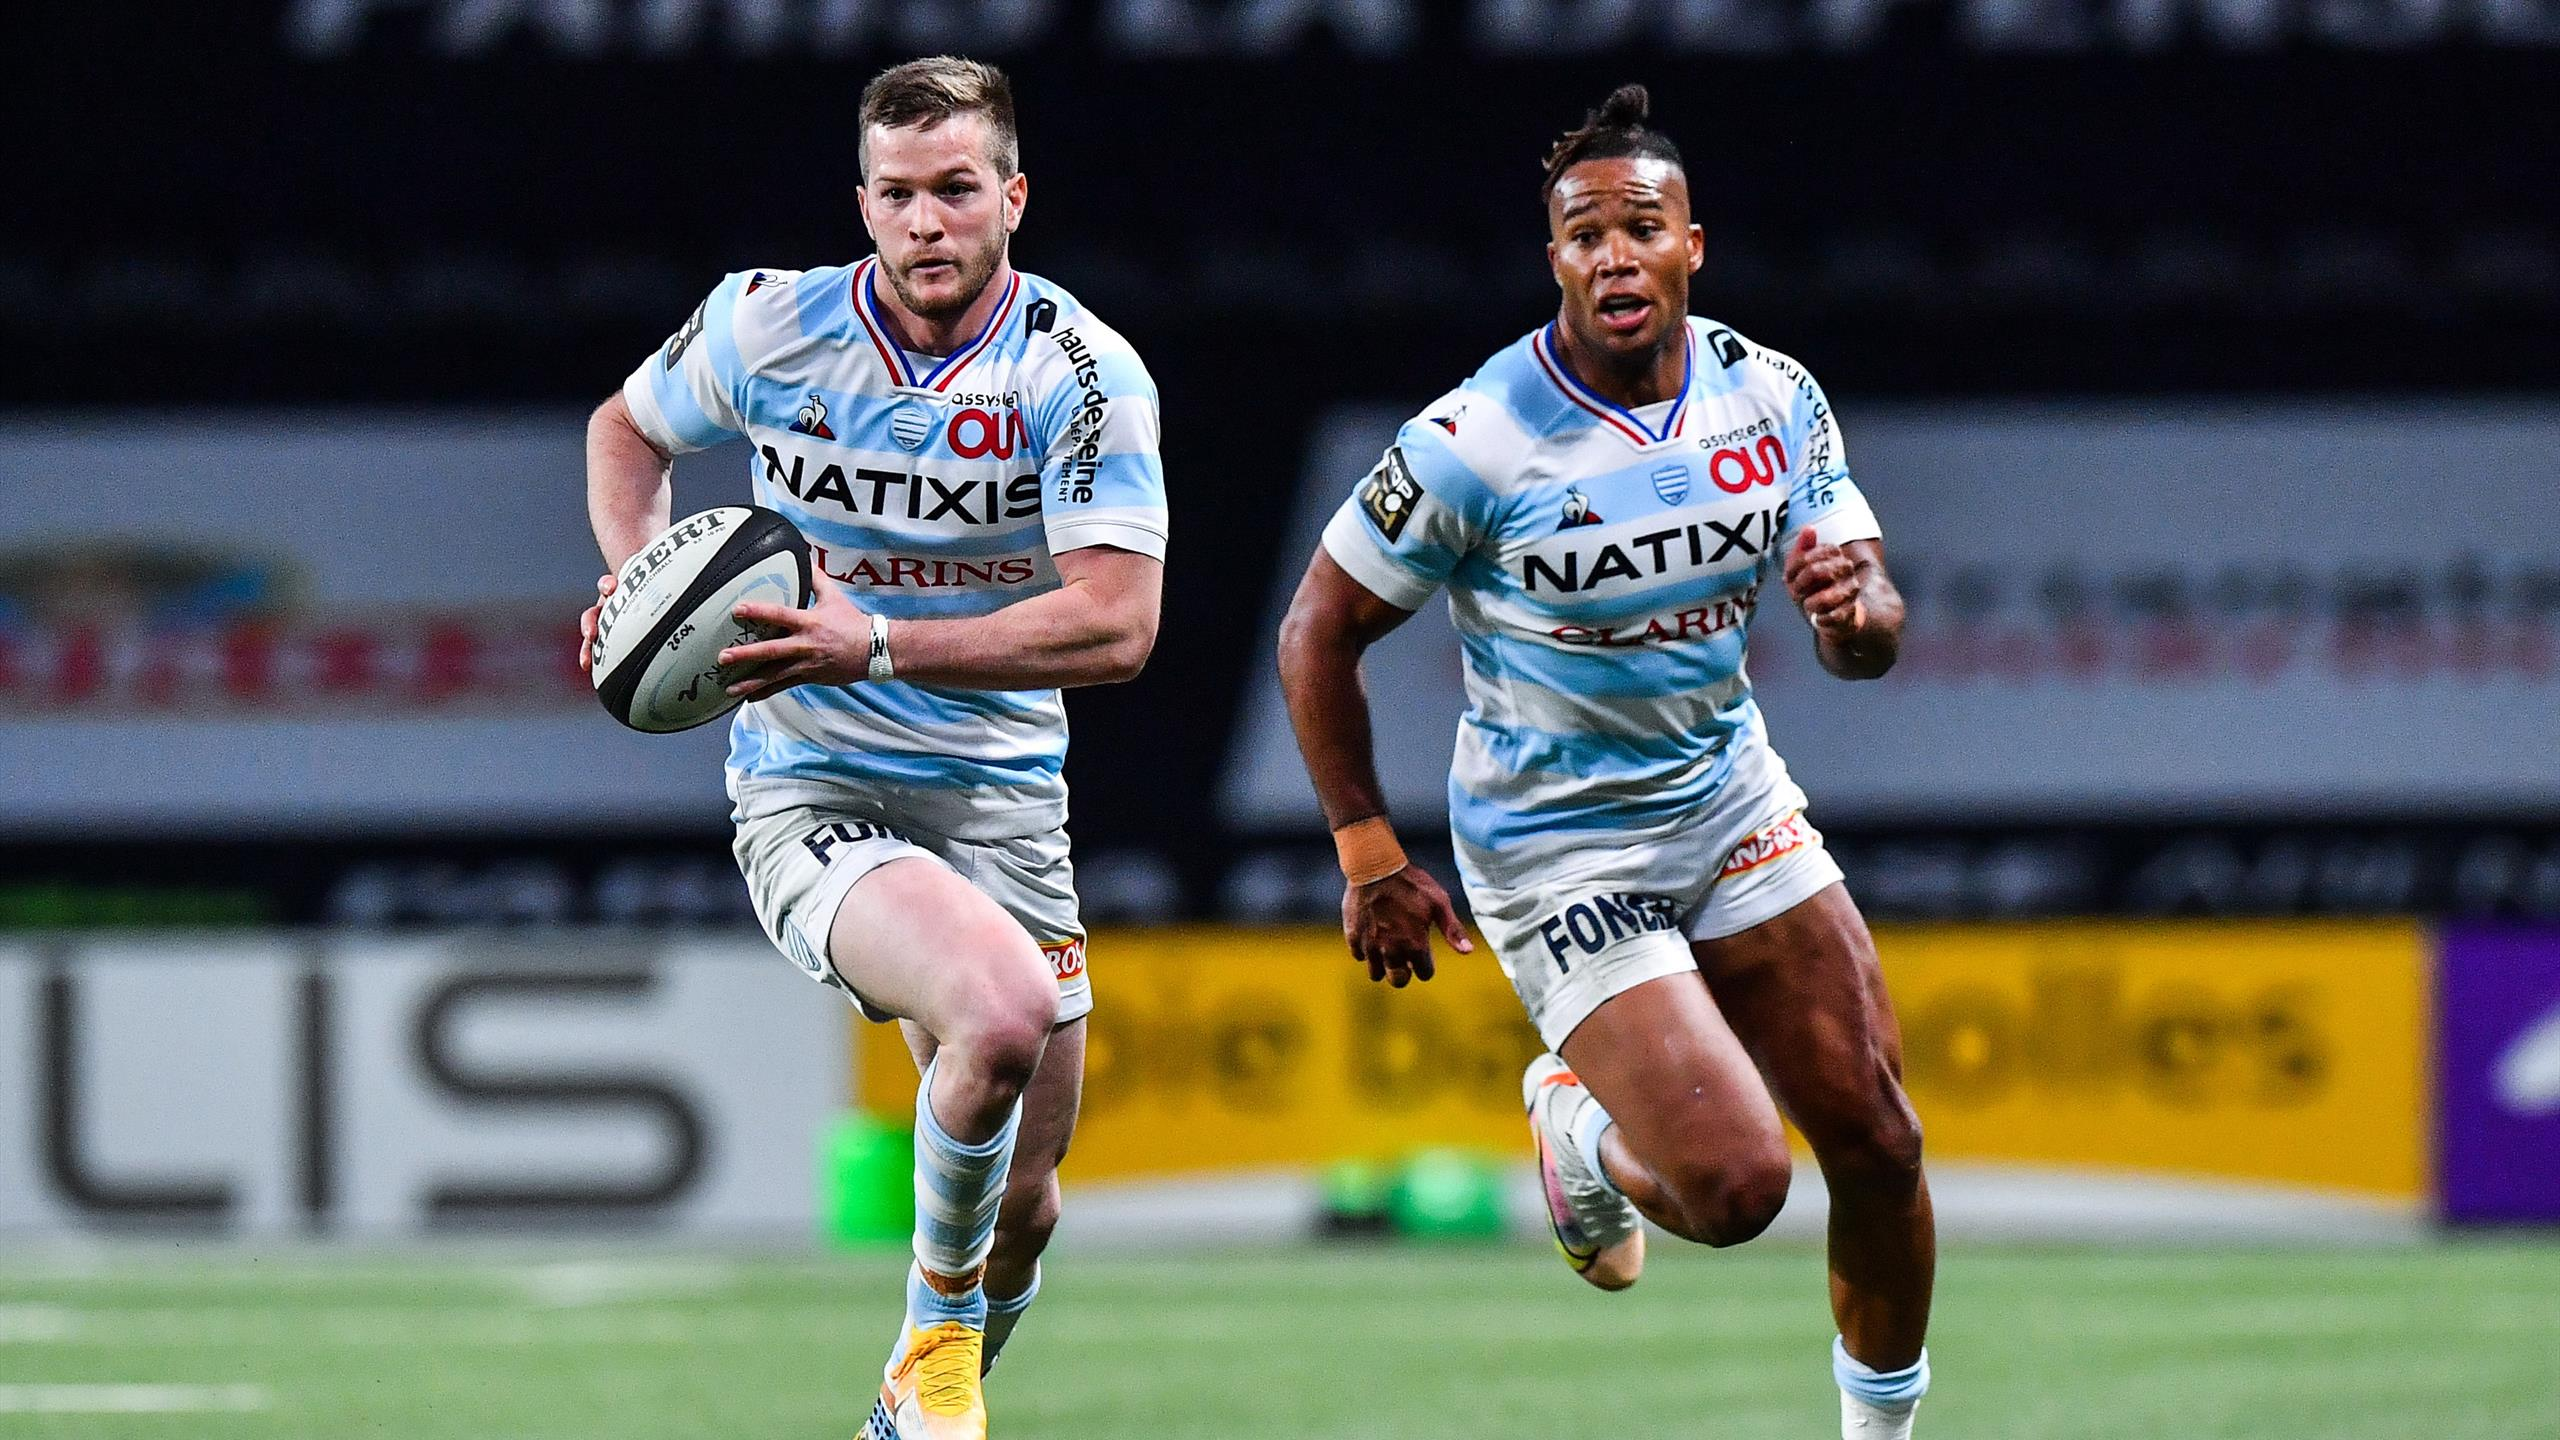 Iconosquare helps Racing 92 monitor their competition and save precious time reporting on performance